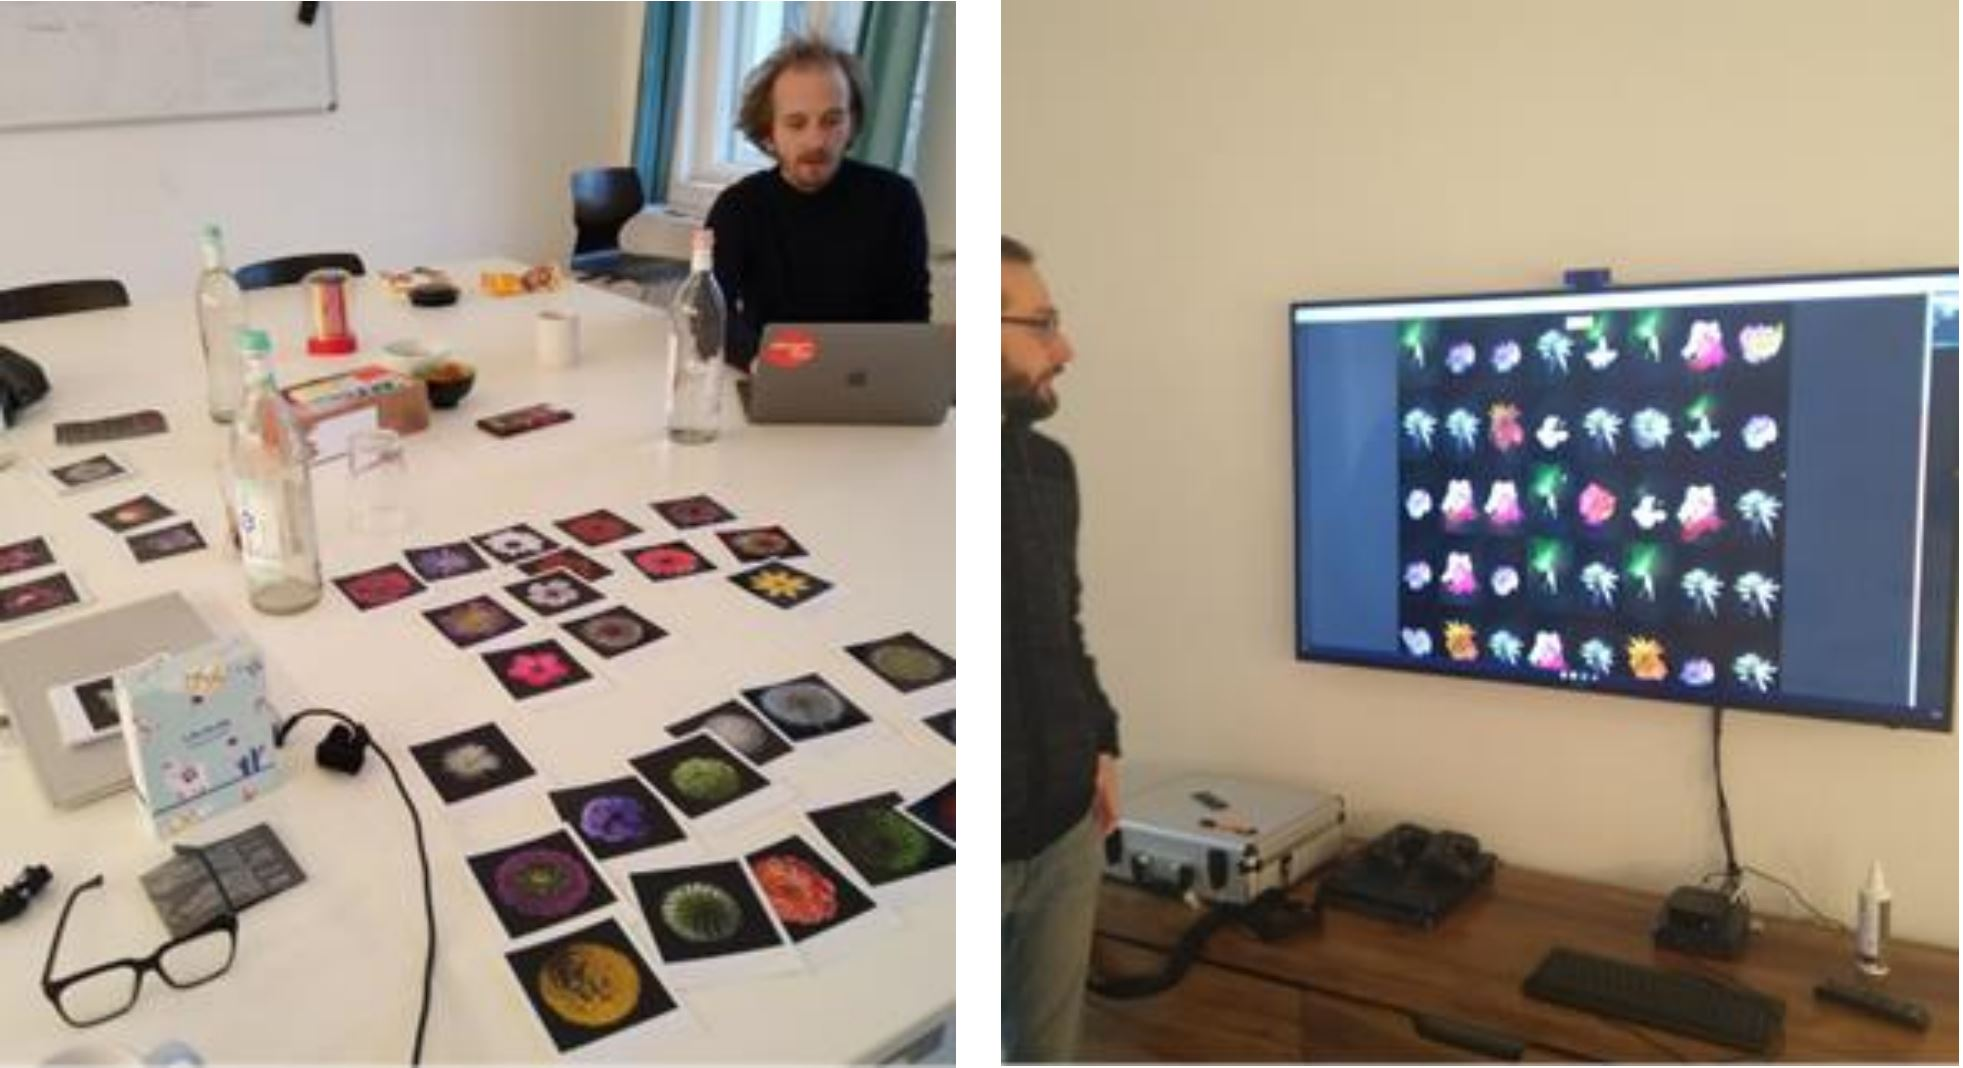 Meeting in Berlin between Flamboyant and Florian Dohmann and Sebastian Zimmermann from Birds on Mars.